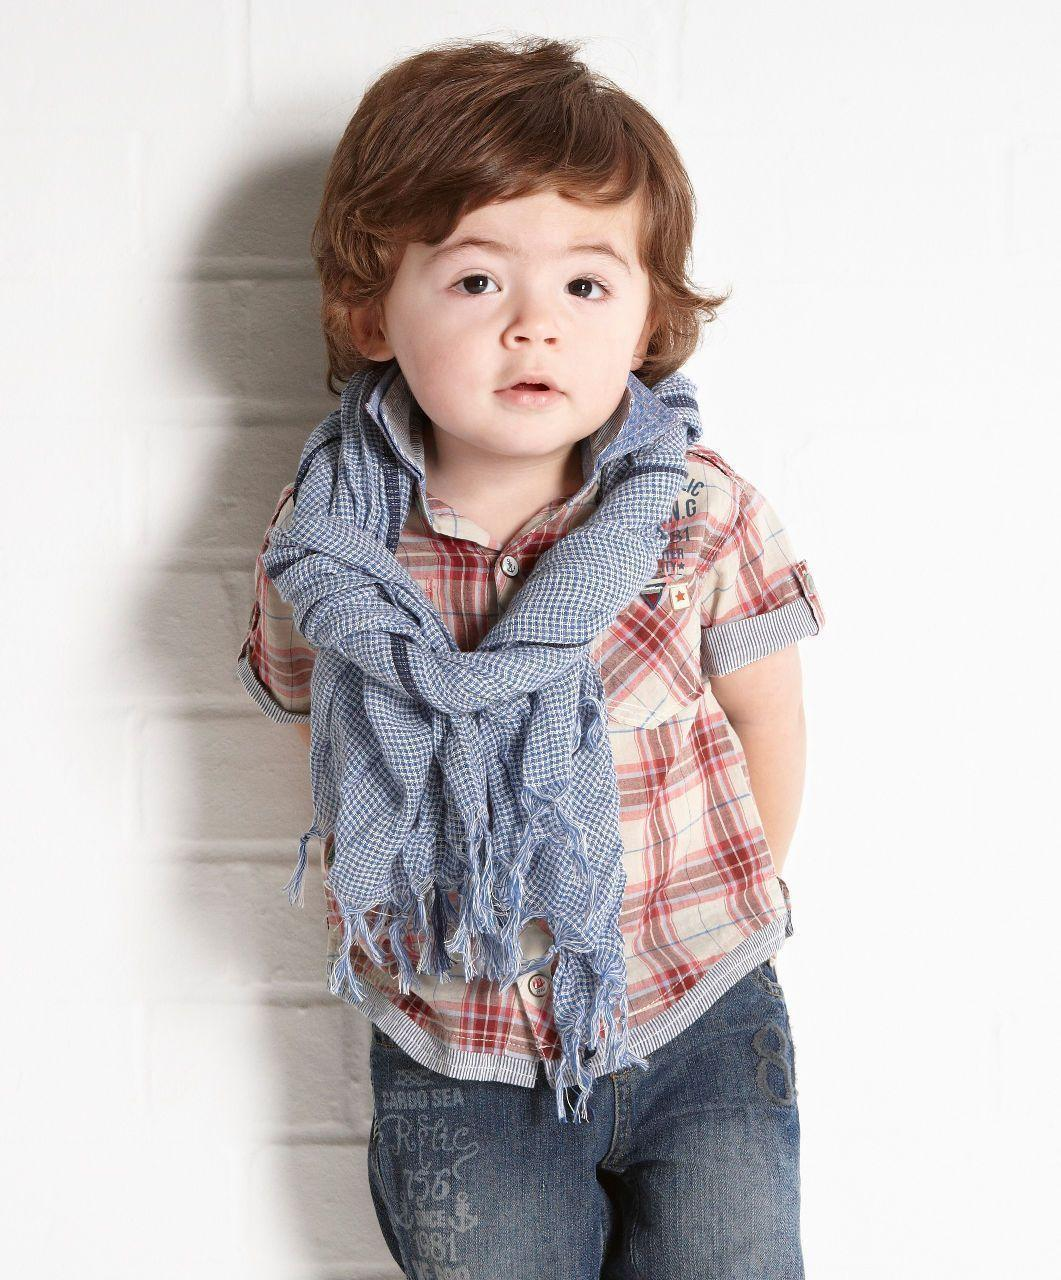 to wear - Small stylish boy pics video